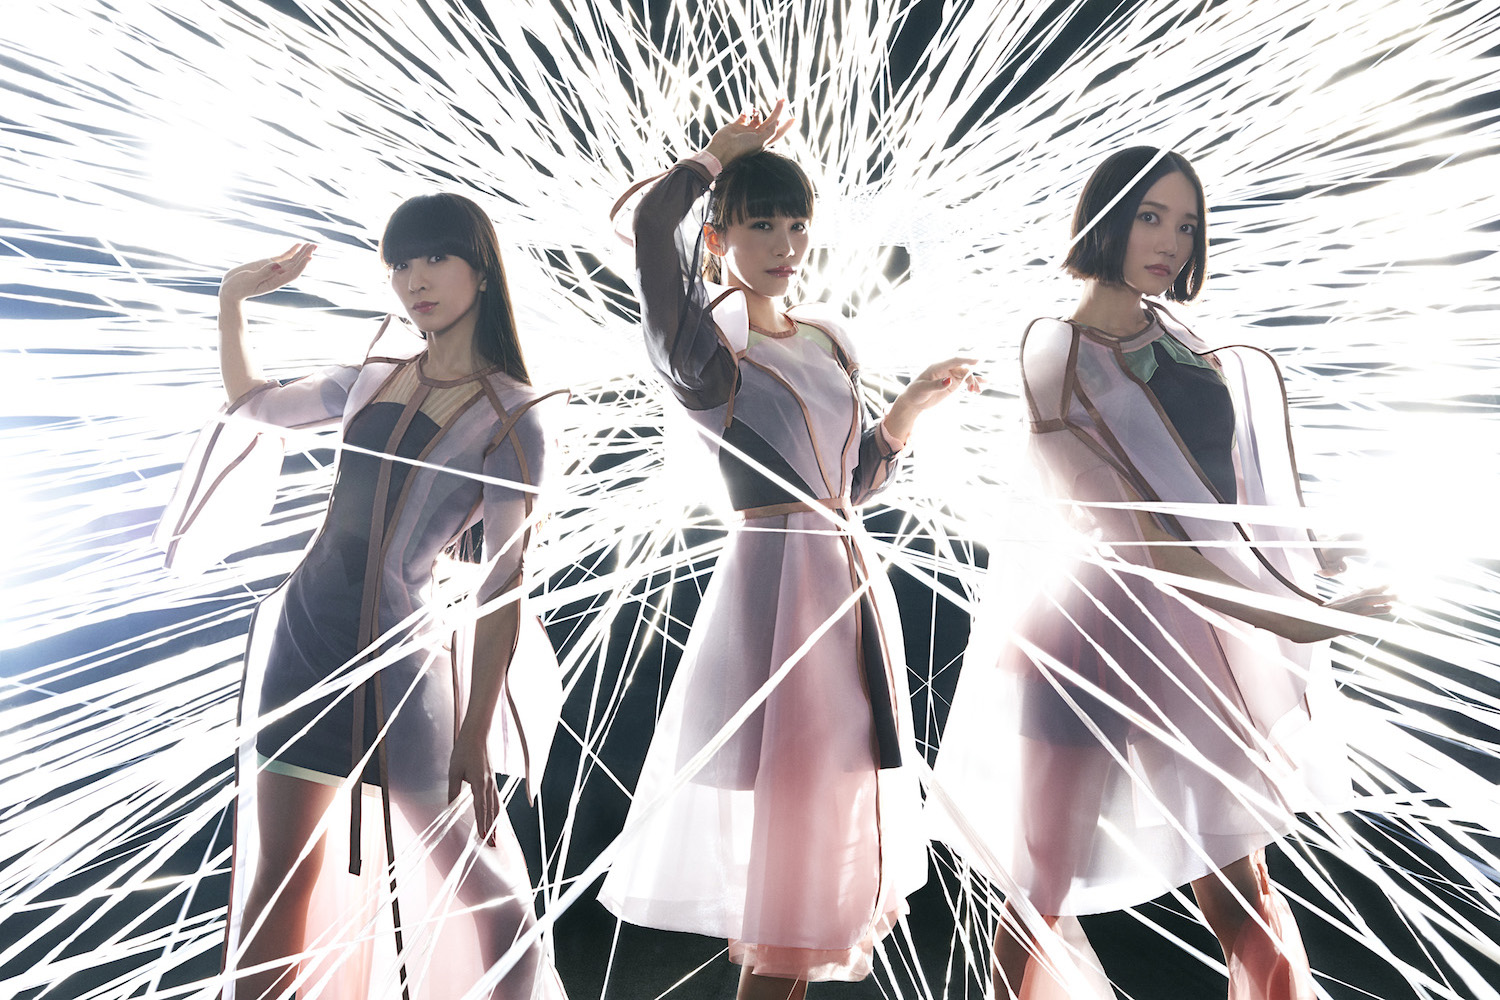 NekoPOP-Perfume-Future-Pop-Tour-2019-interview-1